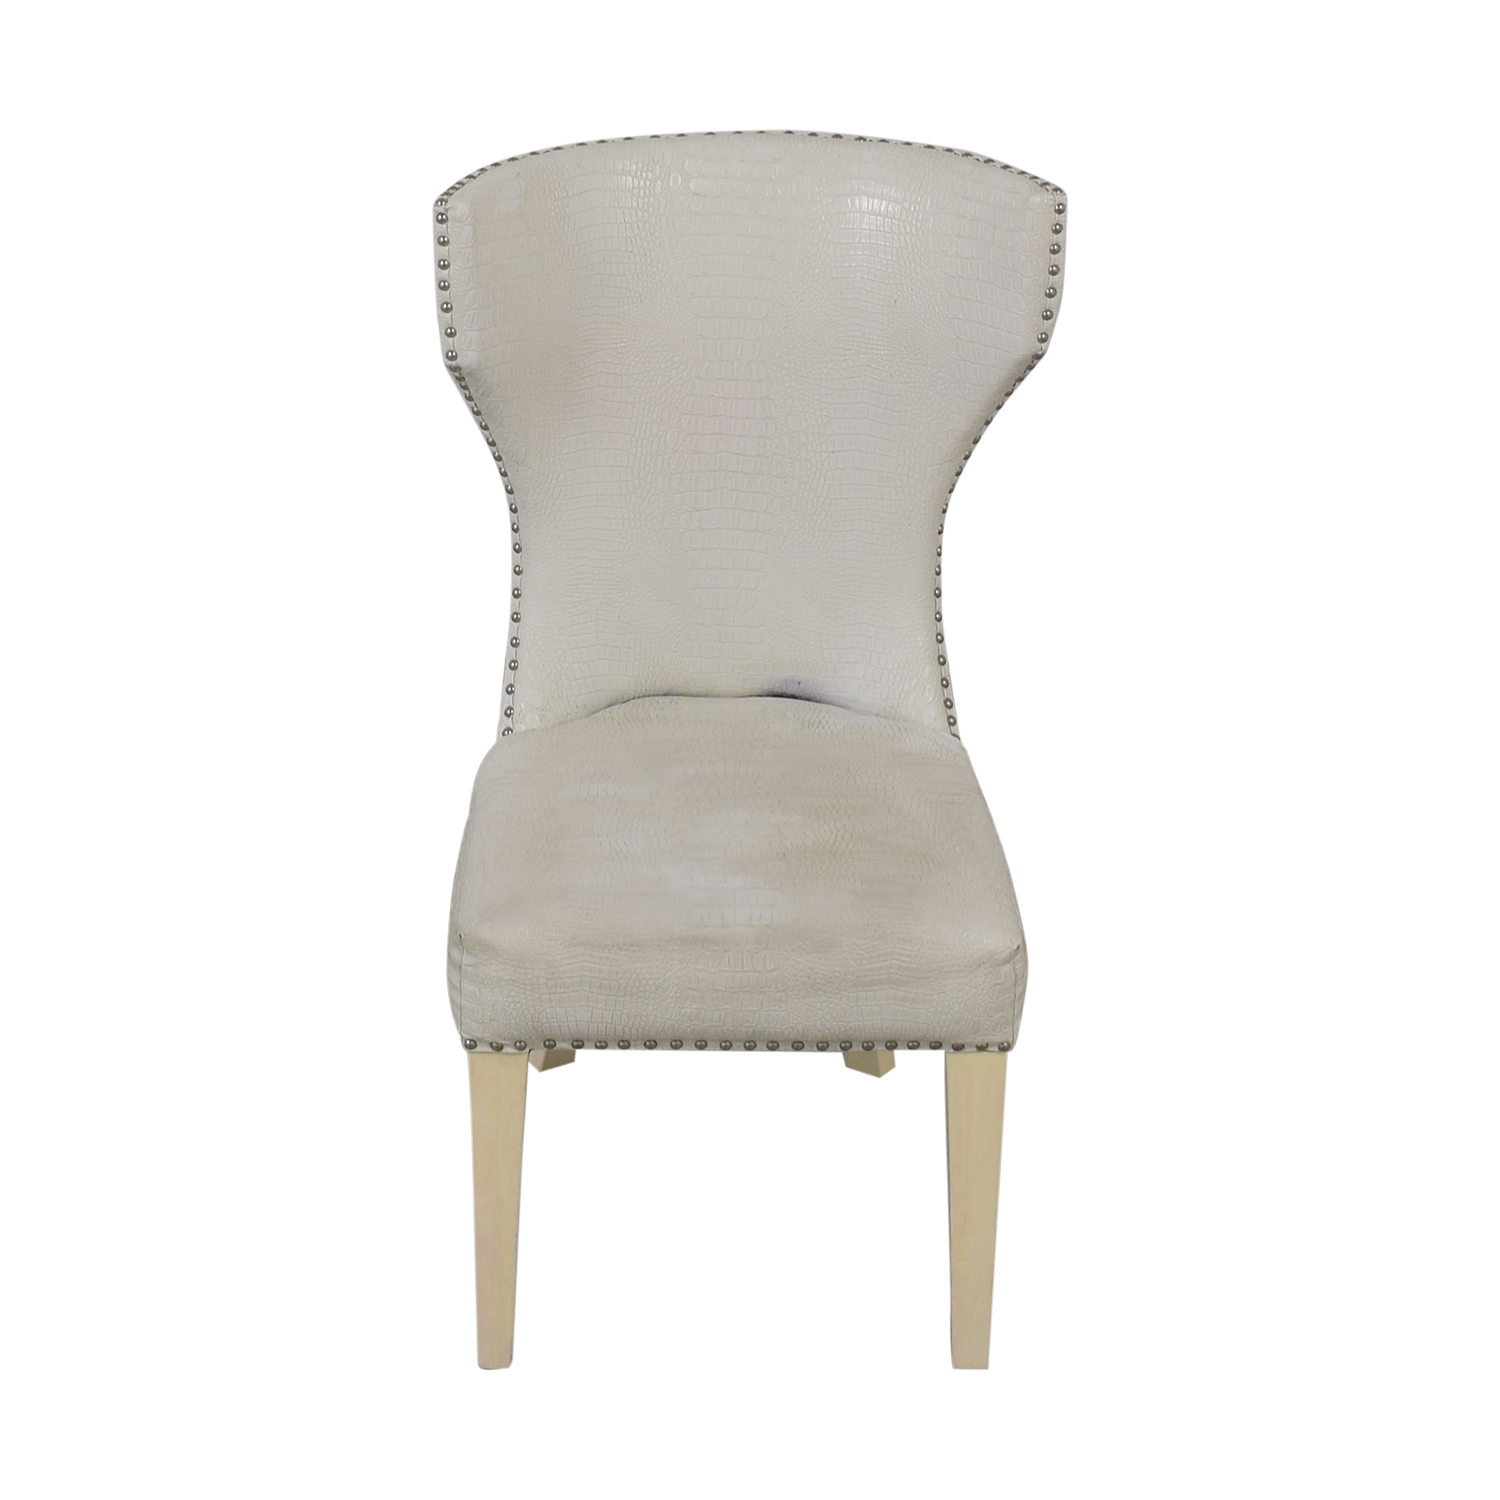 Shine by S.H.O Shine by S.H.O. Verona Chair second hand